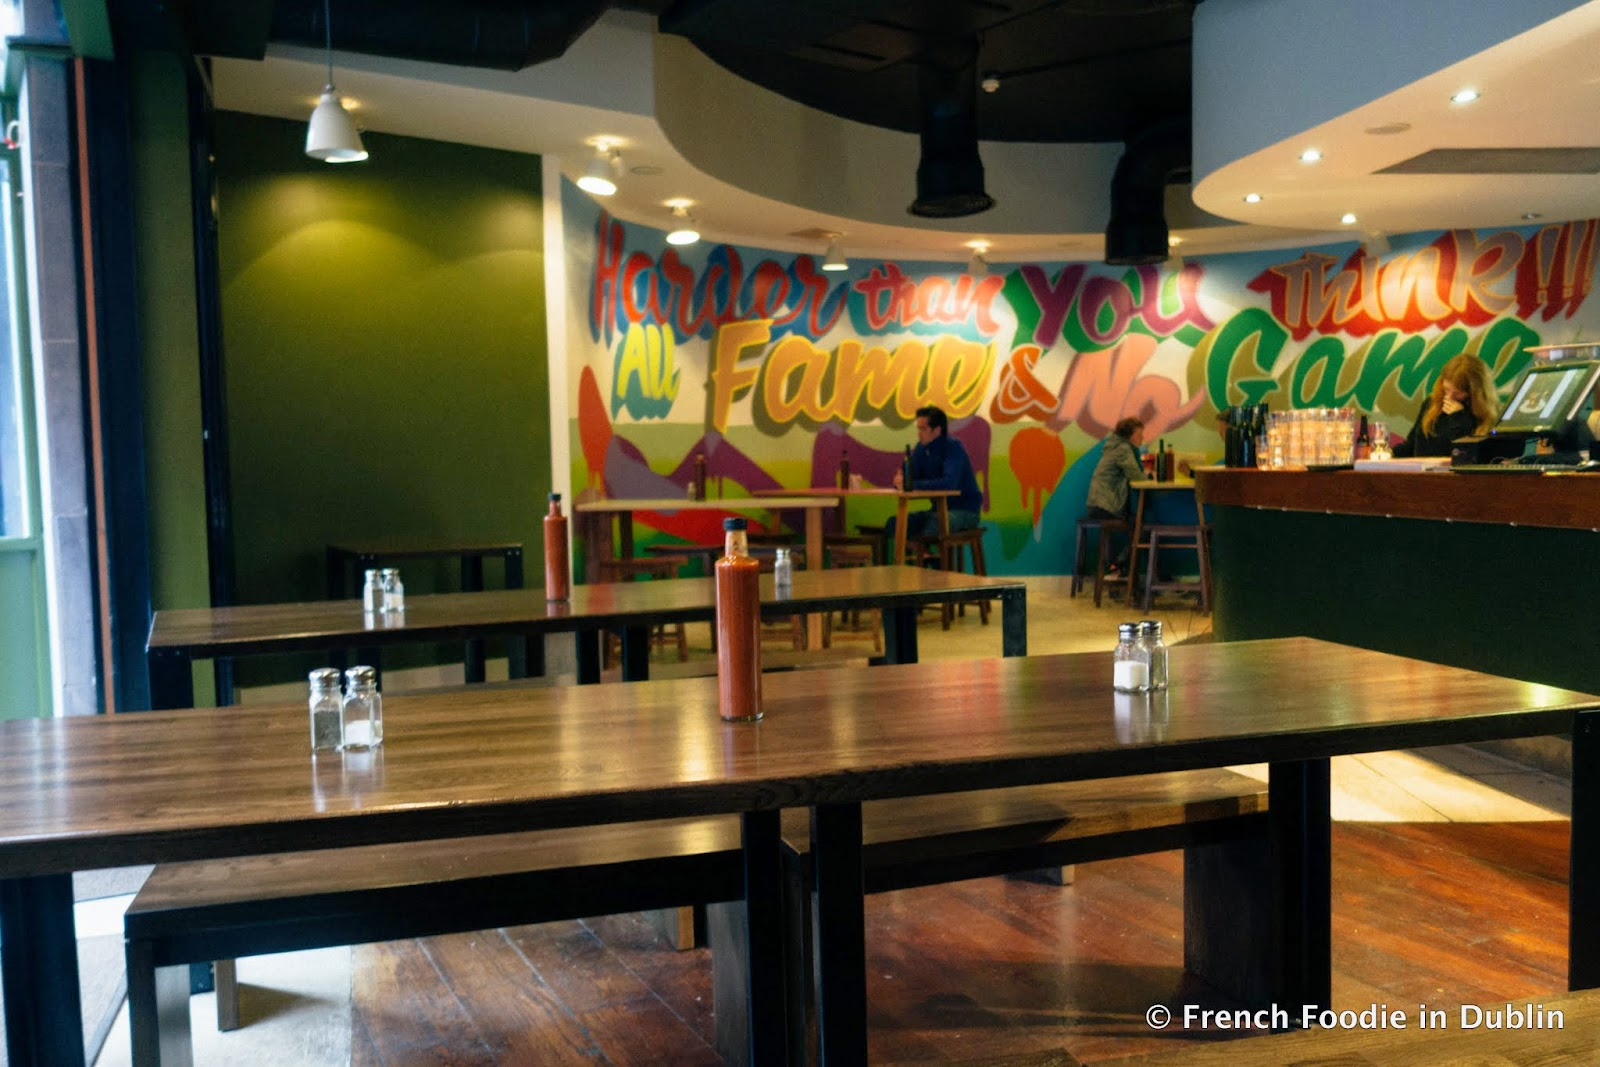 The greenhouse restaurant dublin - The Restaurant Has Many Outdoor Seats A One Hour Limit Applies When It S Busy And Is Rather Spacious And Bright Inside Apart From Some Giant Graffiti On